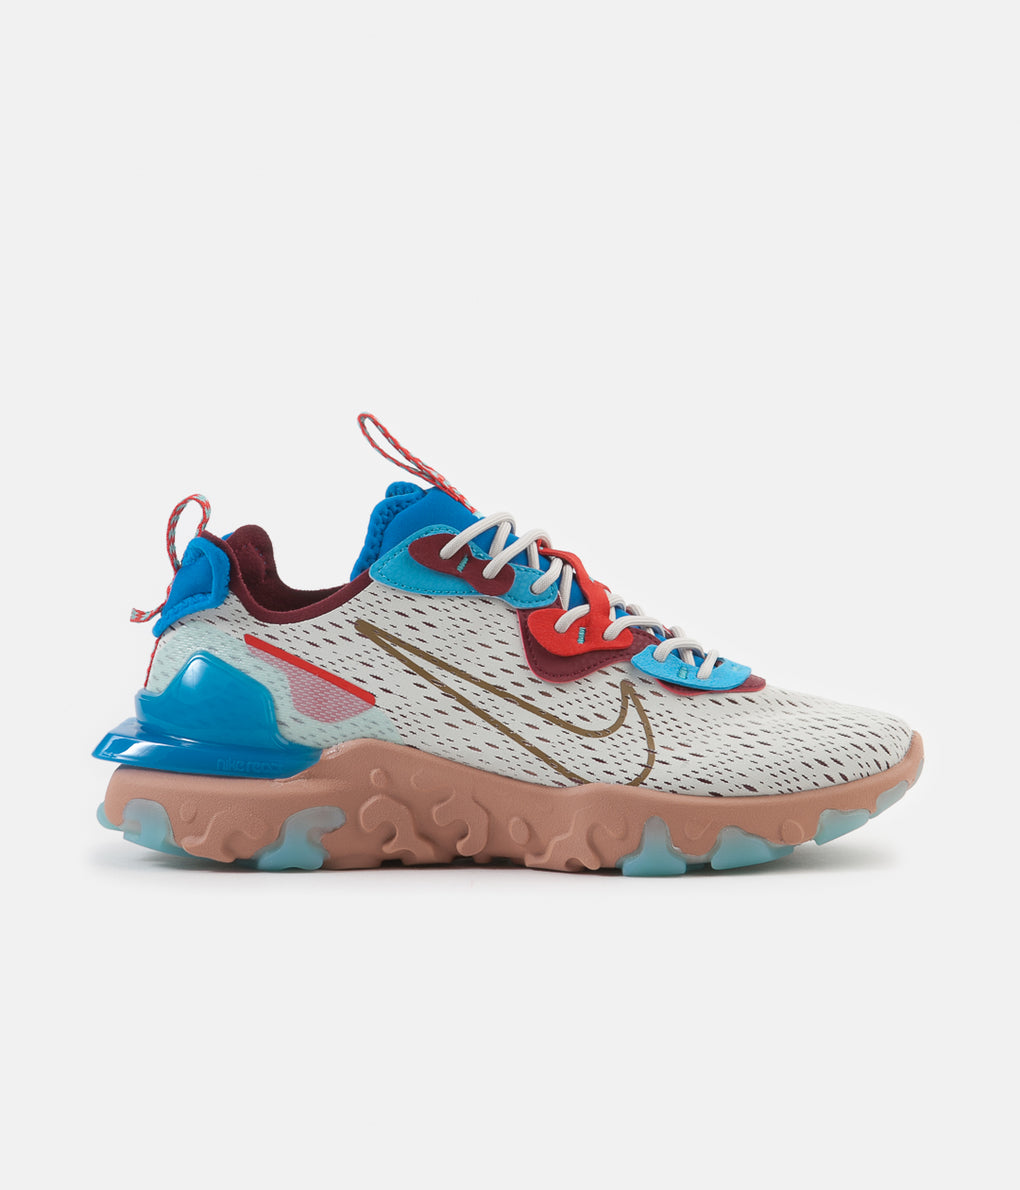 Nike React Vision Shoes - Light Bone / Terra Blush - Photo Blue